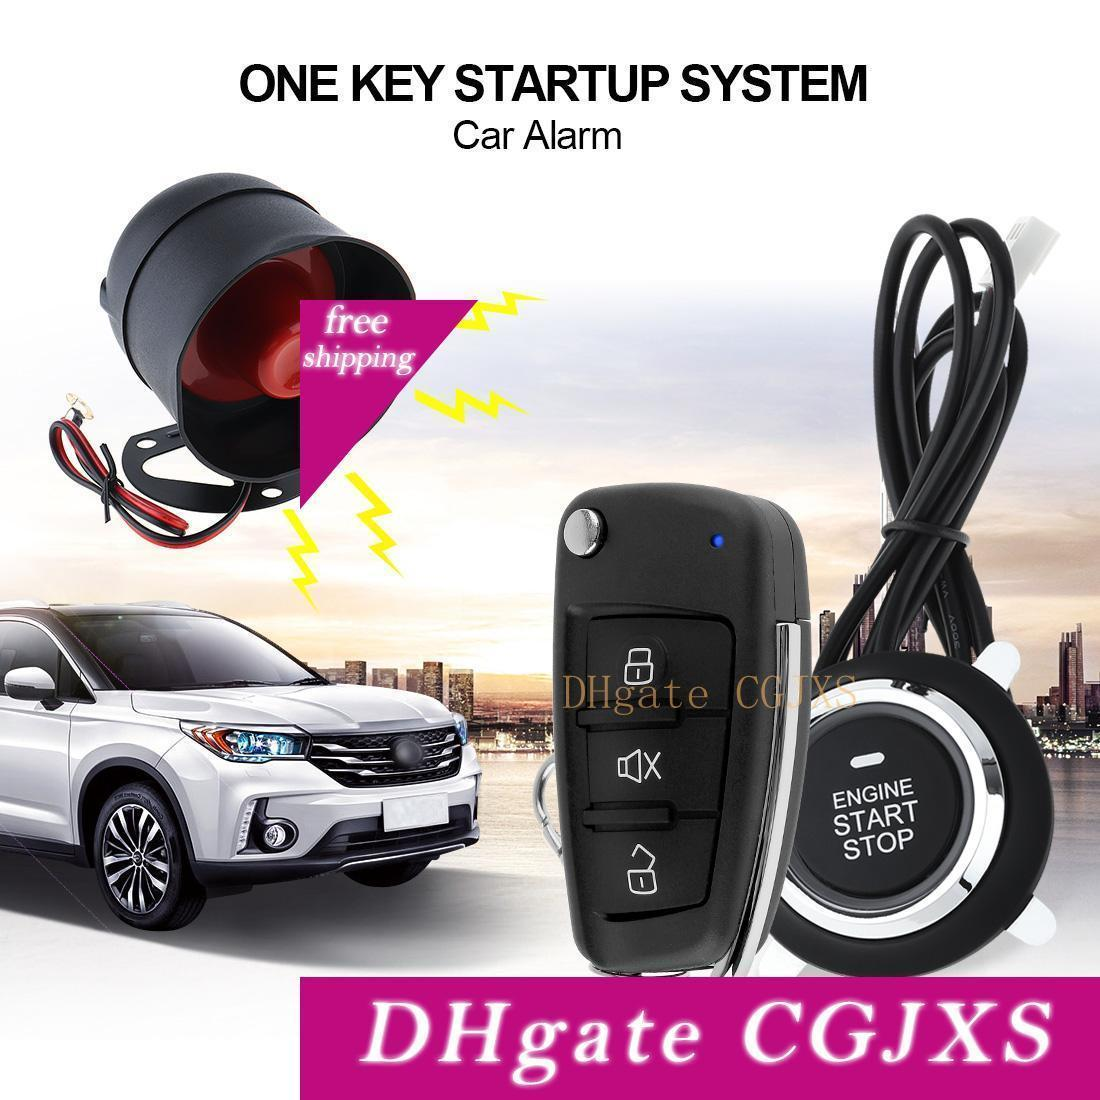 2020 Universal Car Alarm System Remote Start Stop Engine System With Auto Central Lock And Keyless Entry Cal 10h From Wnmdksi 39 56 Dhgate Com